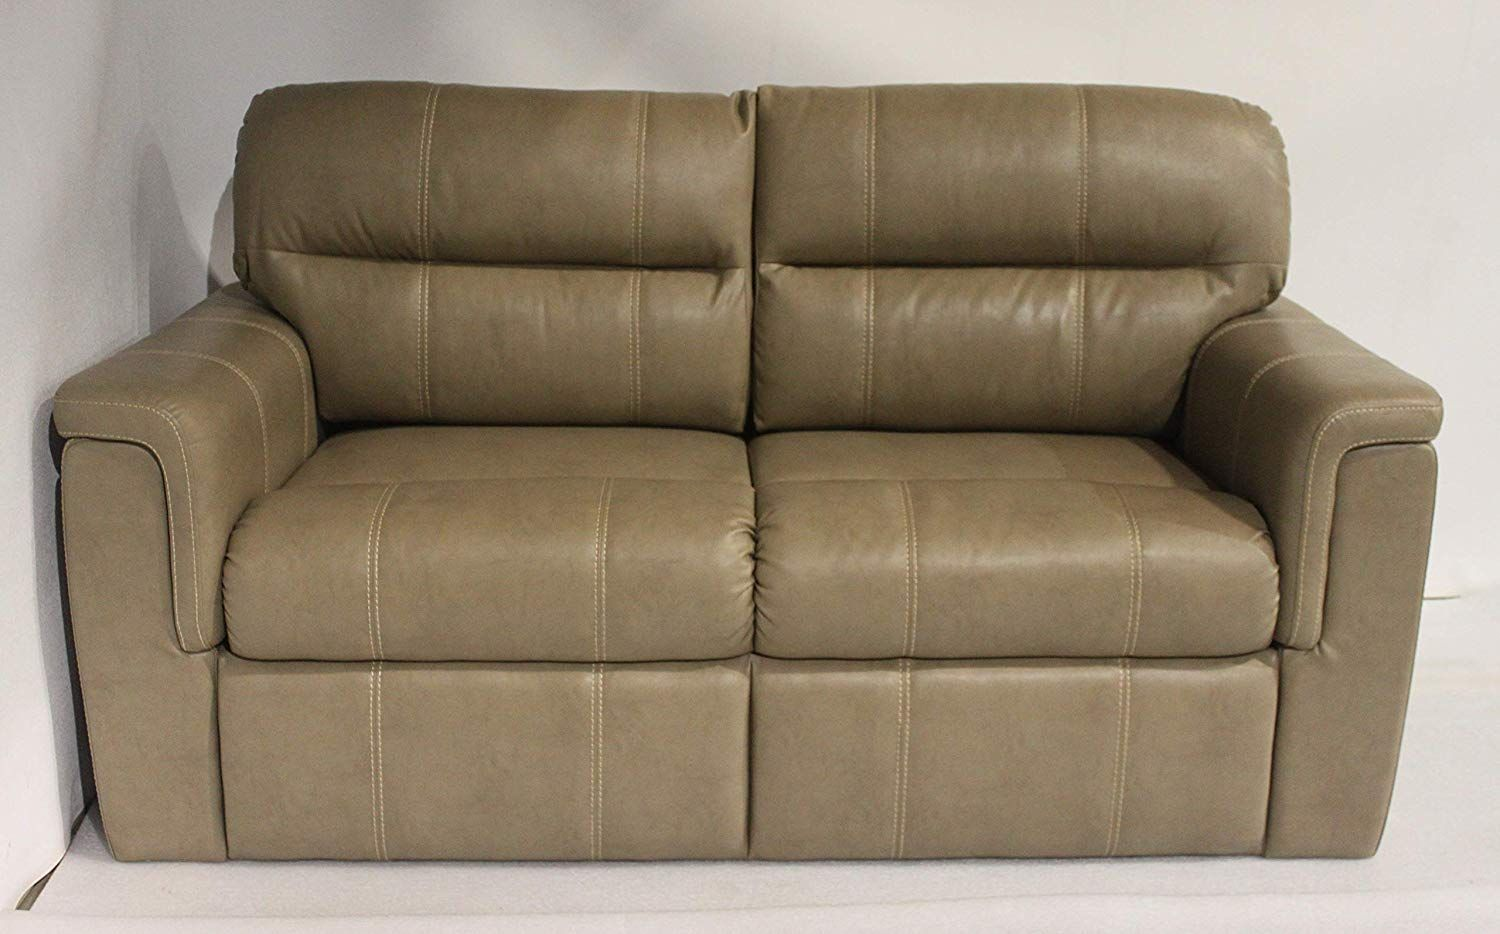 Thomas Payne Lci 68 Desantis Umber Tri Fold Rv Sleeper Sofa Bed